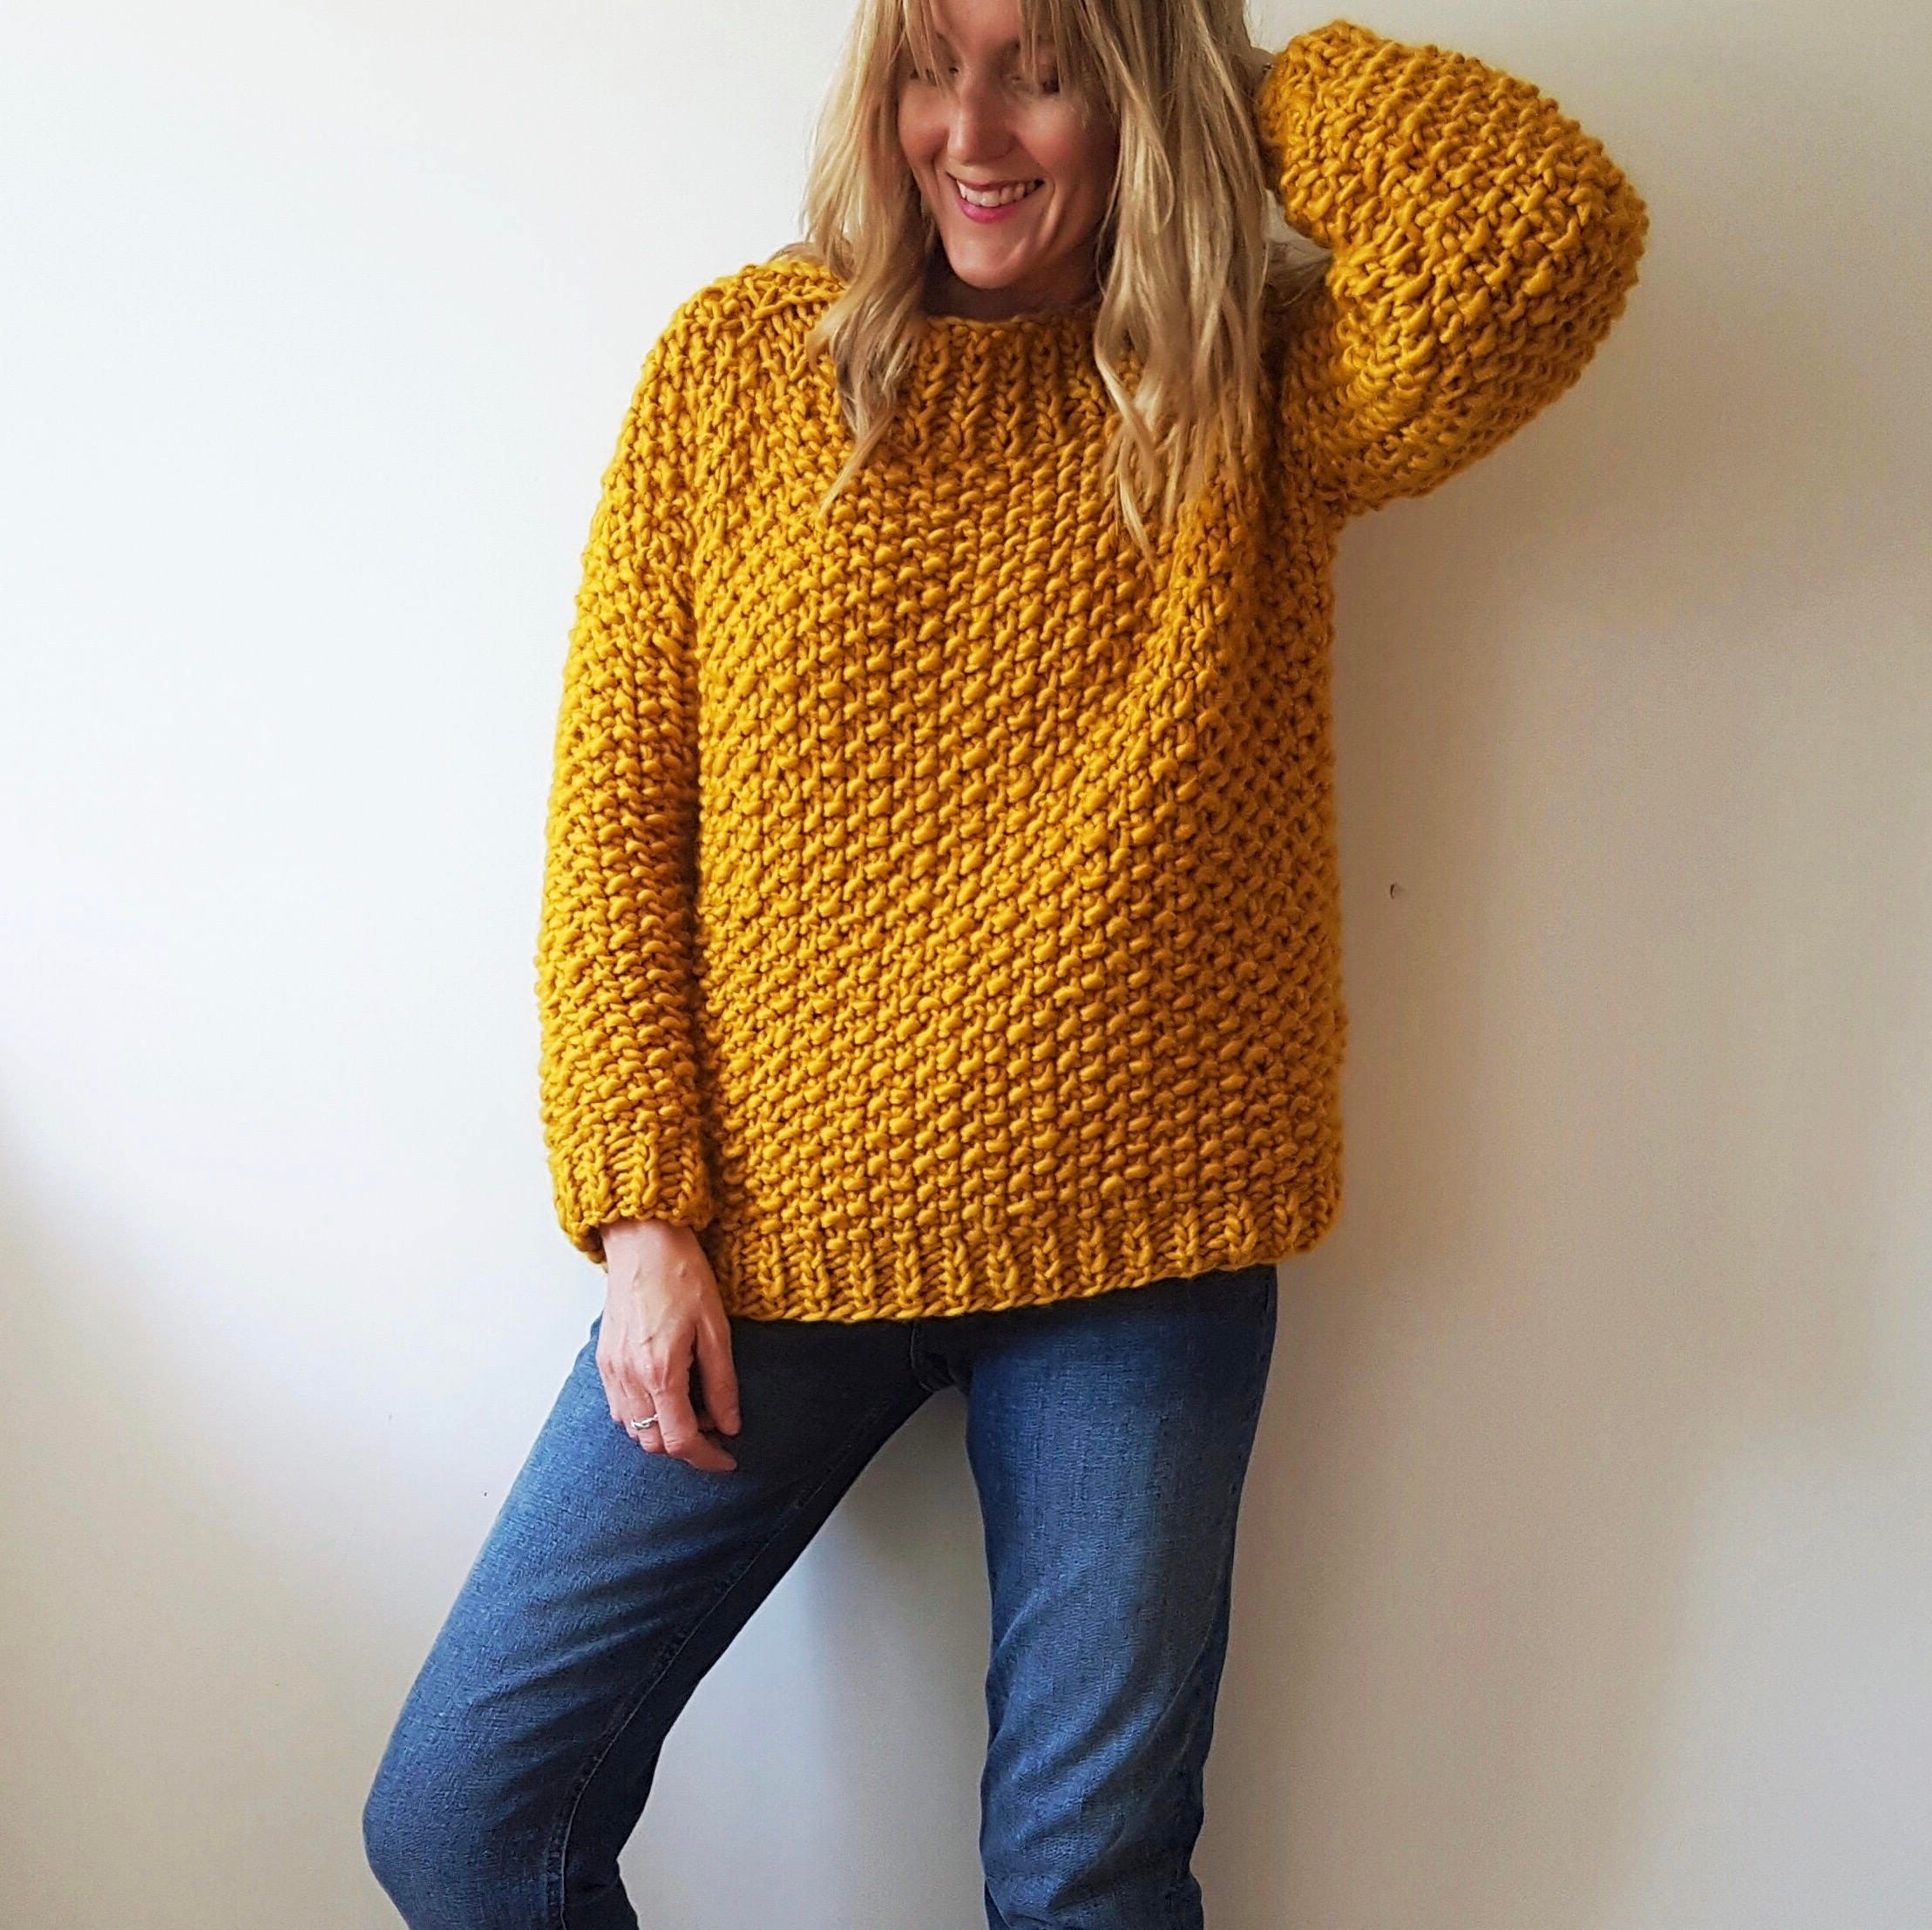 Read Oversized Knit Jumper Reviews and Customer Ratings on crochet jumper oversized, oversized knitting jumper, oversized knit jumpers, knit oversized jumpers Reviews, Women's Clothing & Accessories, Pullovers, Cardigans, Dresses Reviews and more at desire-date.tk Buy Cheap Oversized Knit Jumper Now.